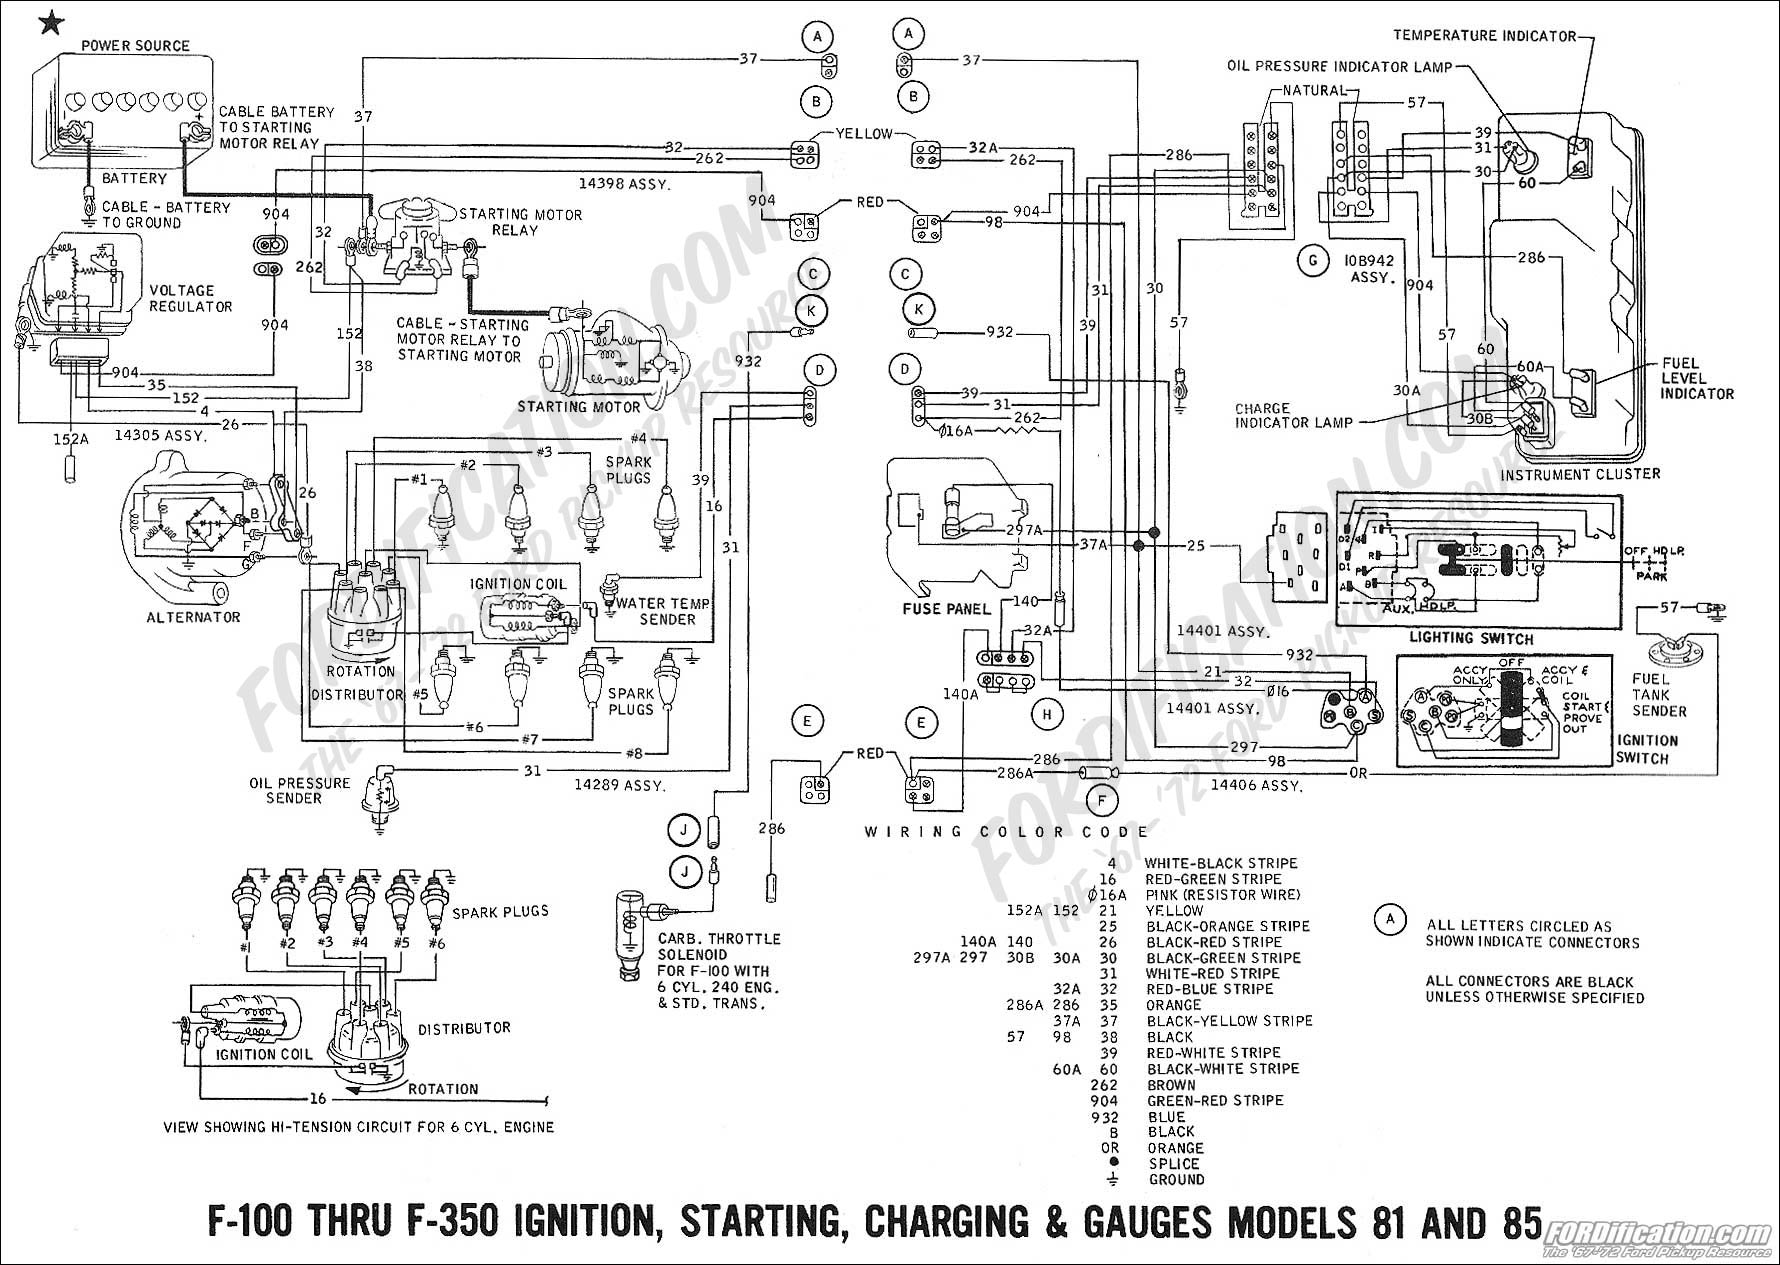 1970 F250 Wiring Diagram - Wiring Diagrams Schematic  Ford Ranchero Wiring Diagrams on 1970 ford ranchero suspension, 1971 ford mustang wiring diagram, 1970 chevy nova wiring diagram, 1970 chevrolet chevelle wiring diagram, 1970 plymouth gtx wiring diagram, 1970 pontiac grand prix wiring diagram, 1978 ford bronco wiring diagram, 1970 buick skylark wiring diagram, 1970 ford ranchero wheels, 1970 plymouth barracuda wiring diagram, 1970 mercury cougar wiring diagram, 1970 dodge challenger wiring diagram, 1972 ford gran torino wiring diagram, 1970 dodge a100 wiring diagram, 1970 ford ranchero seats, 1970 chrysler 300 wiring diagram, 1970 ford ranchero brochure, 1970 pontiac lemans wiring diagram, 1970 mercury montego wiring diagram, 1970 ford ranchero parts,